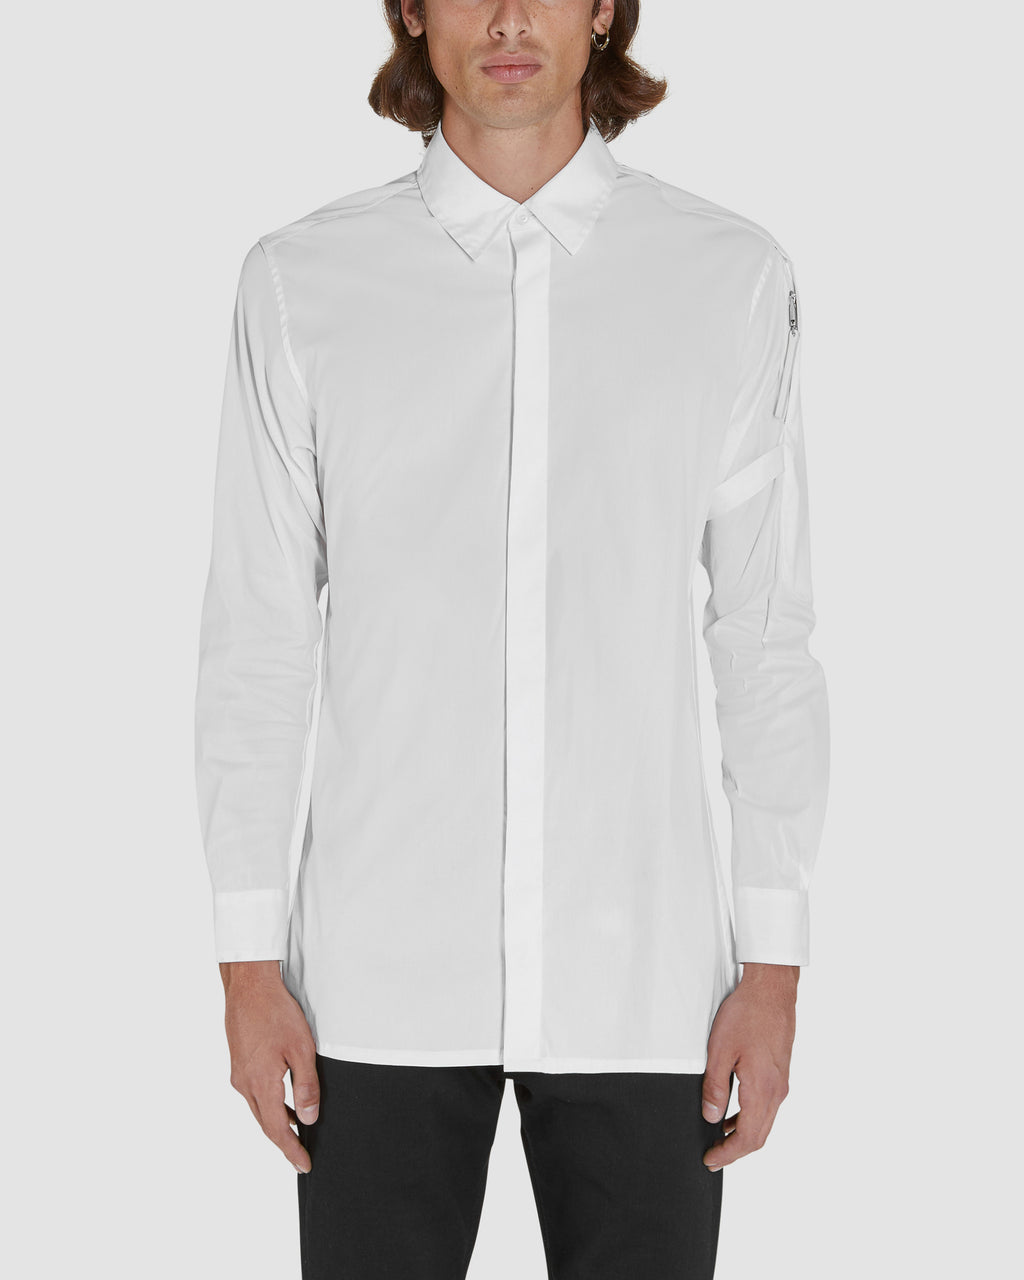 SLING BUTTON UP - PRE ORDER